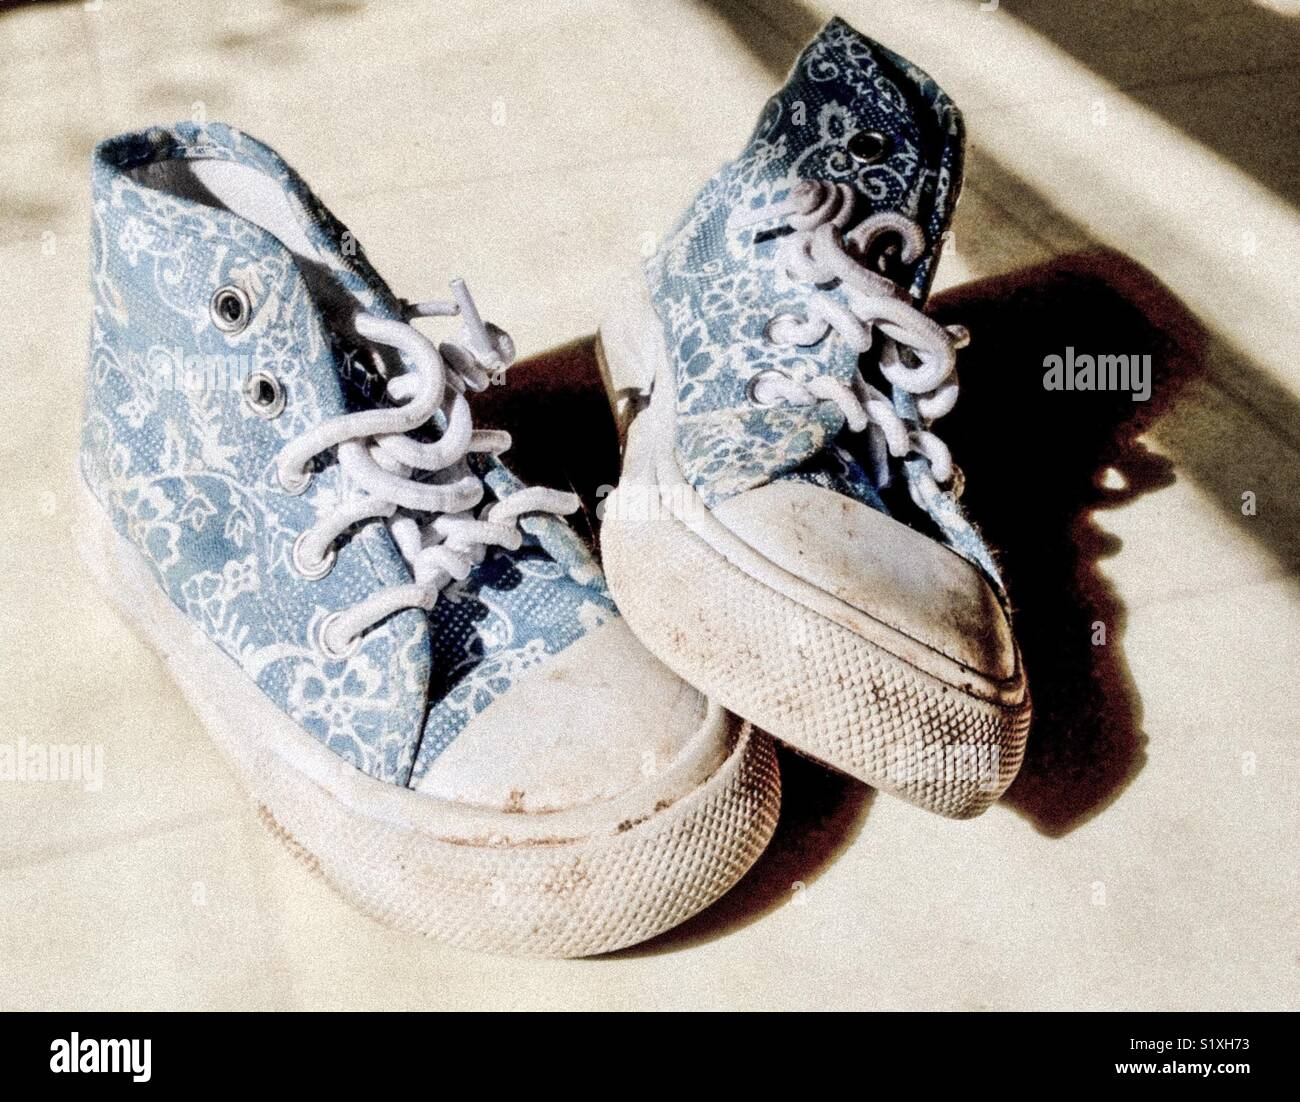 Scuffed toddler shoes - Stock Image